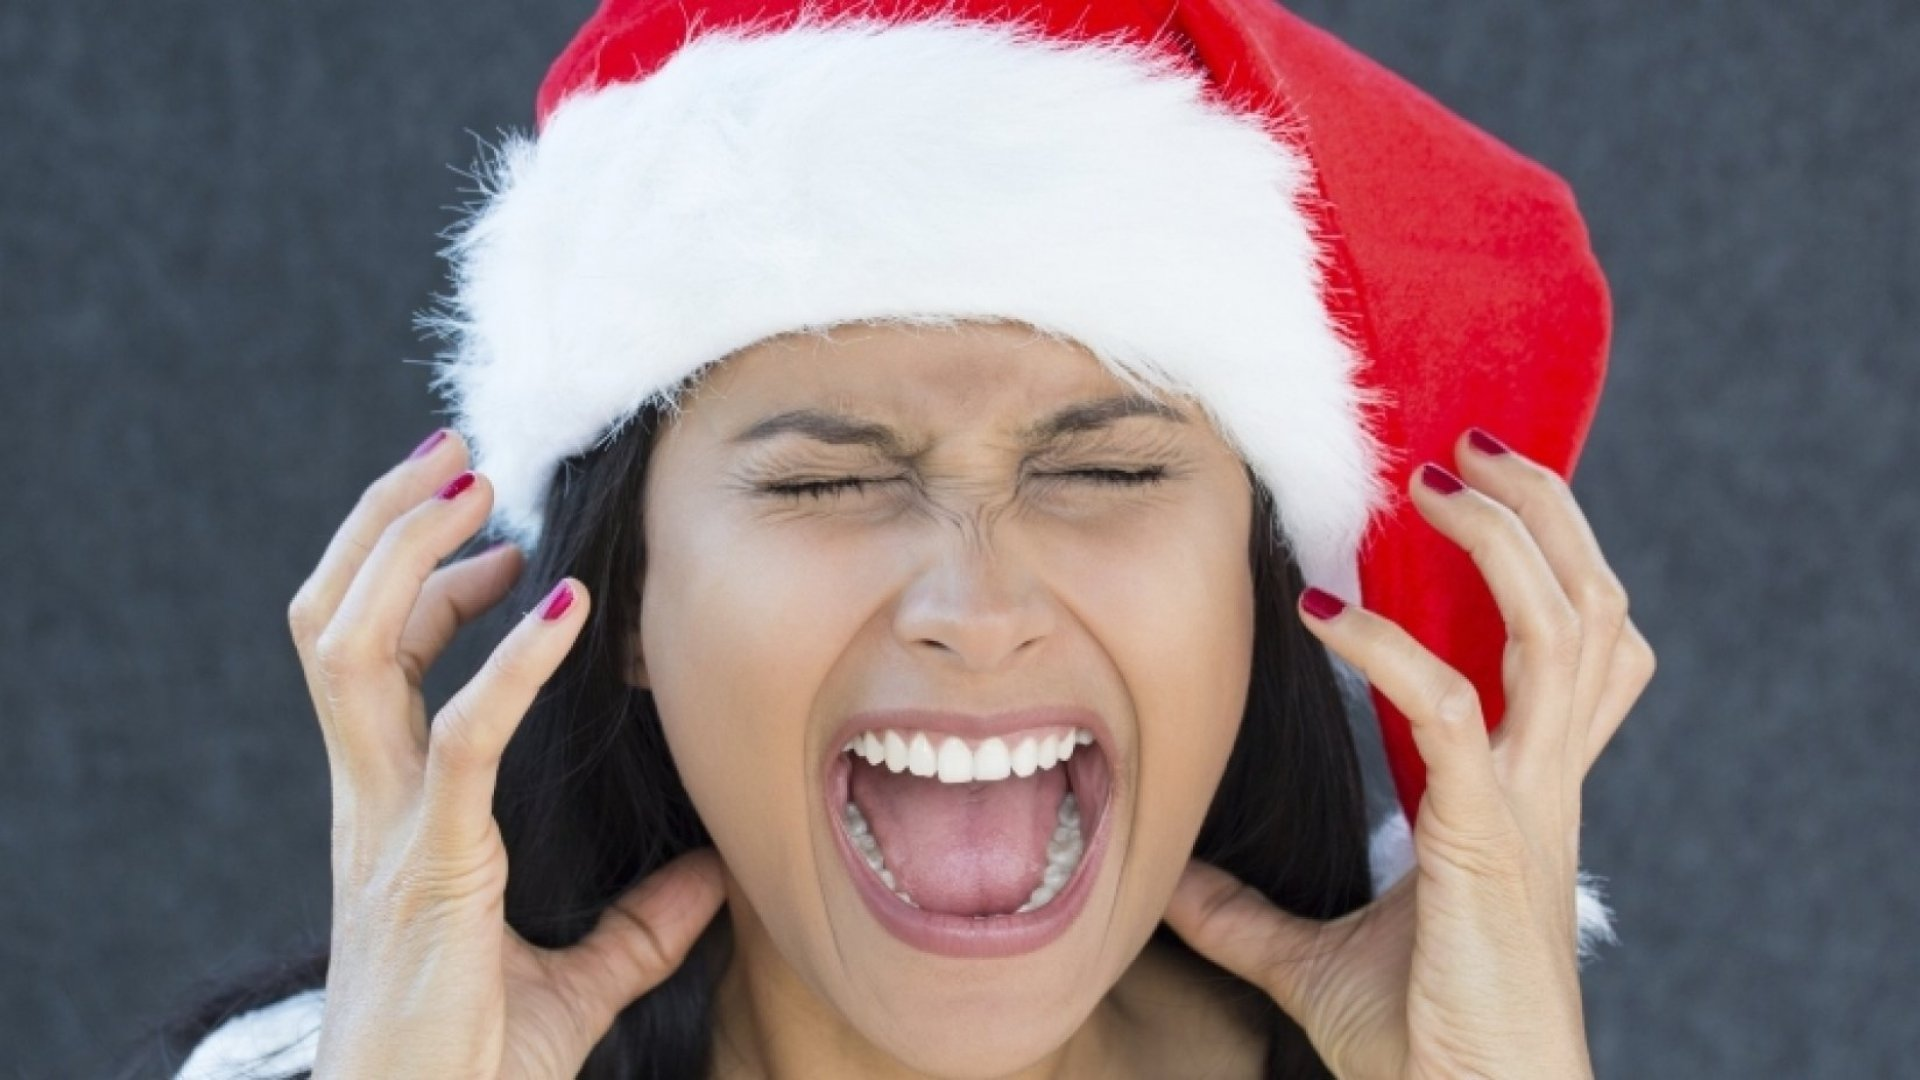 9 Ways to Relieve Workplace Holiday Stress